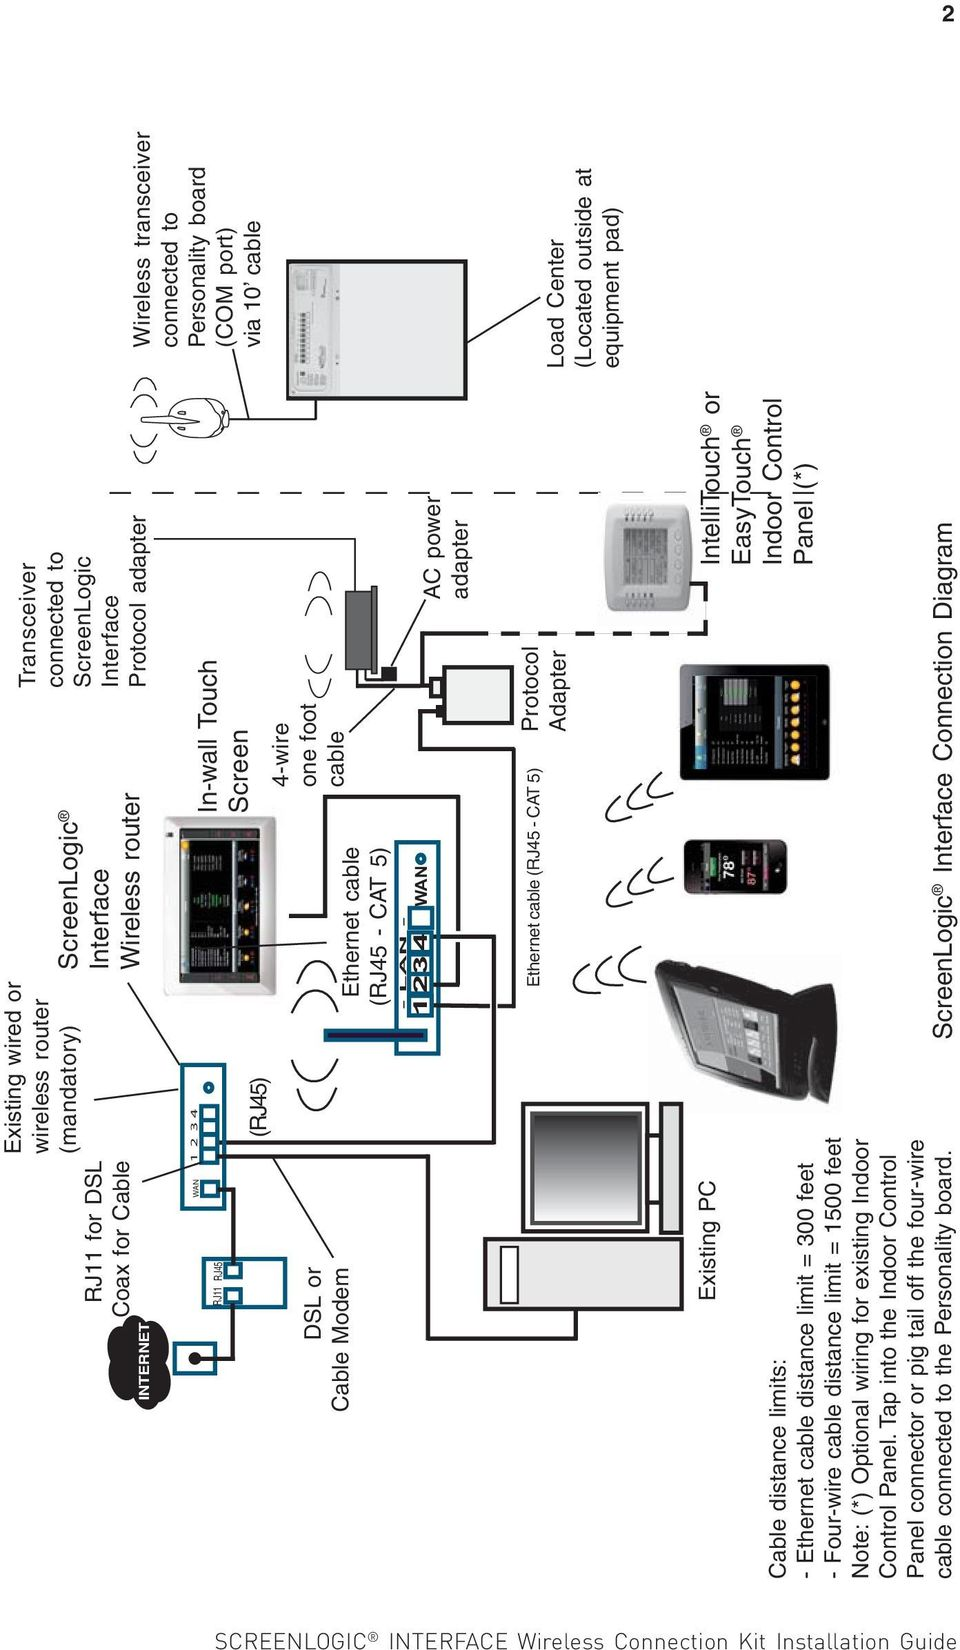 Swm With Diplexer In Direct Tv Satellite Dish Wiring Diagram moreover Xbox One Controller Frame Wiring Diagrams furthermore Mini Hdmi Wiring Diagram additionally Diagrams hookup dvd cablebox tv further Sl3 Swm Wiring Diagrams. on direct tv hook up diagram